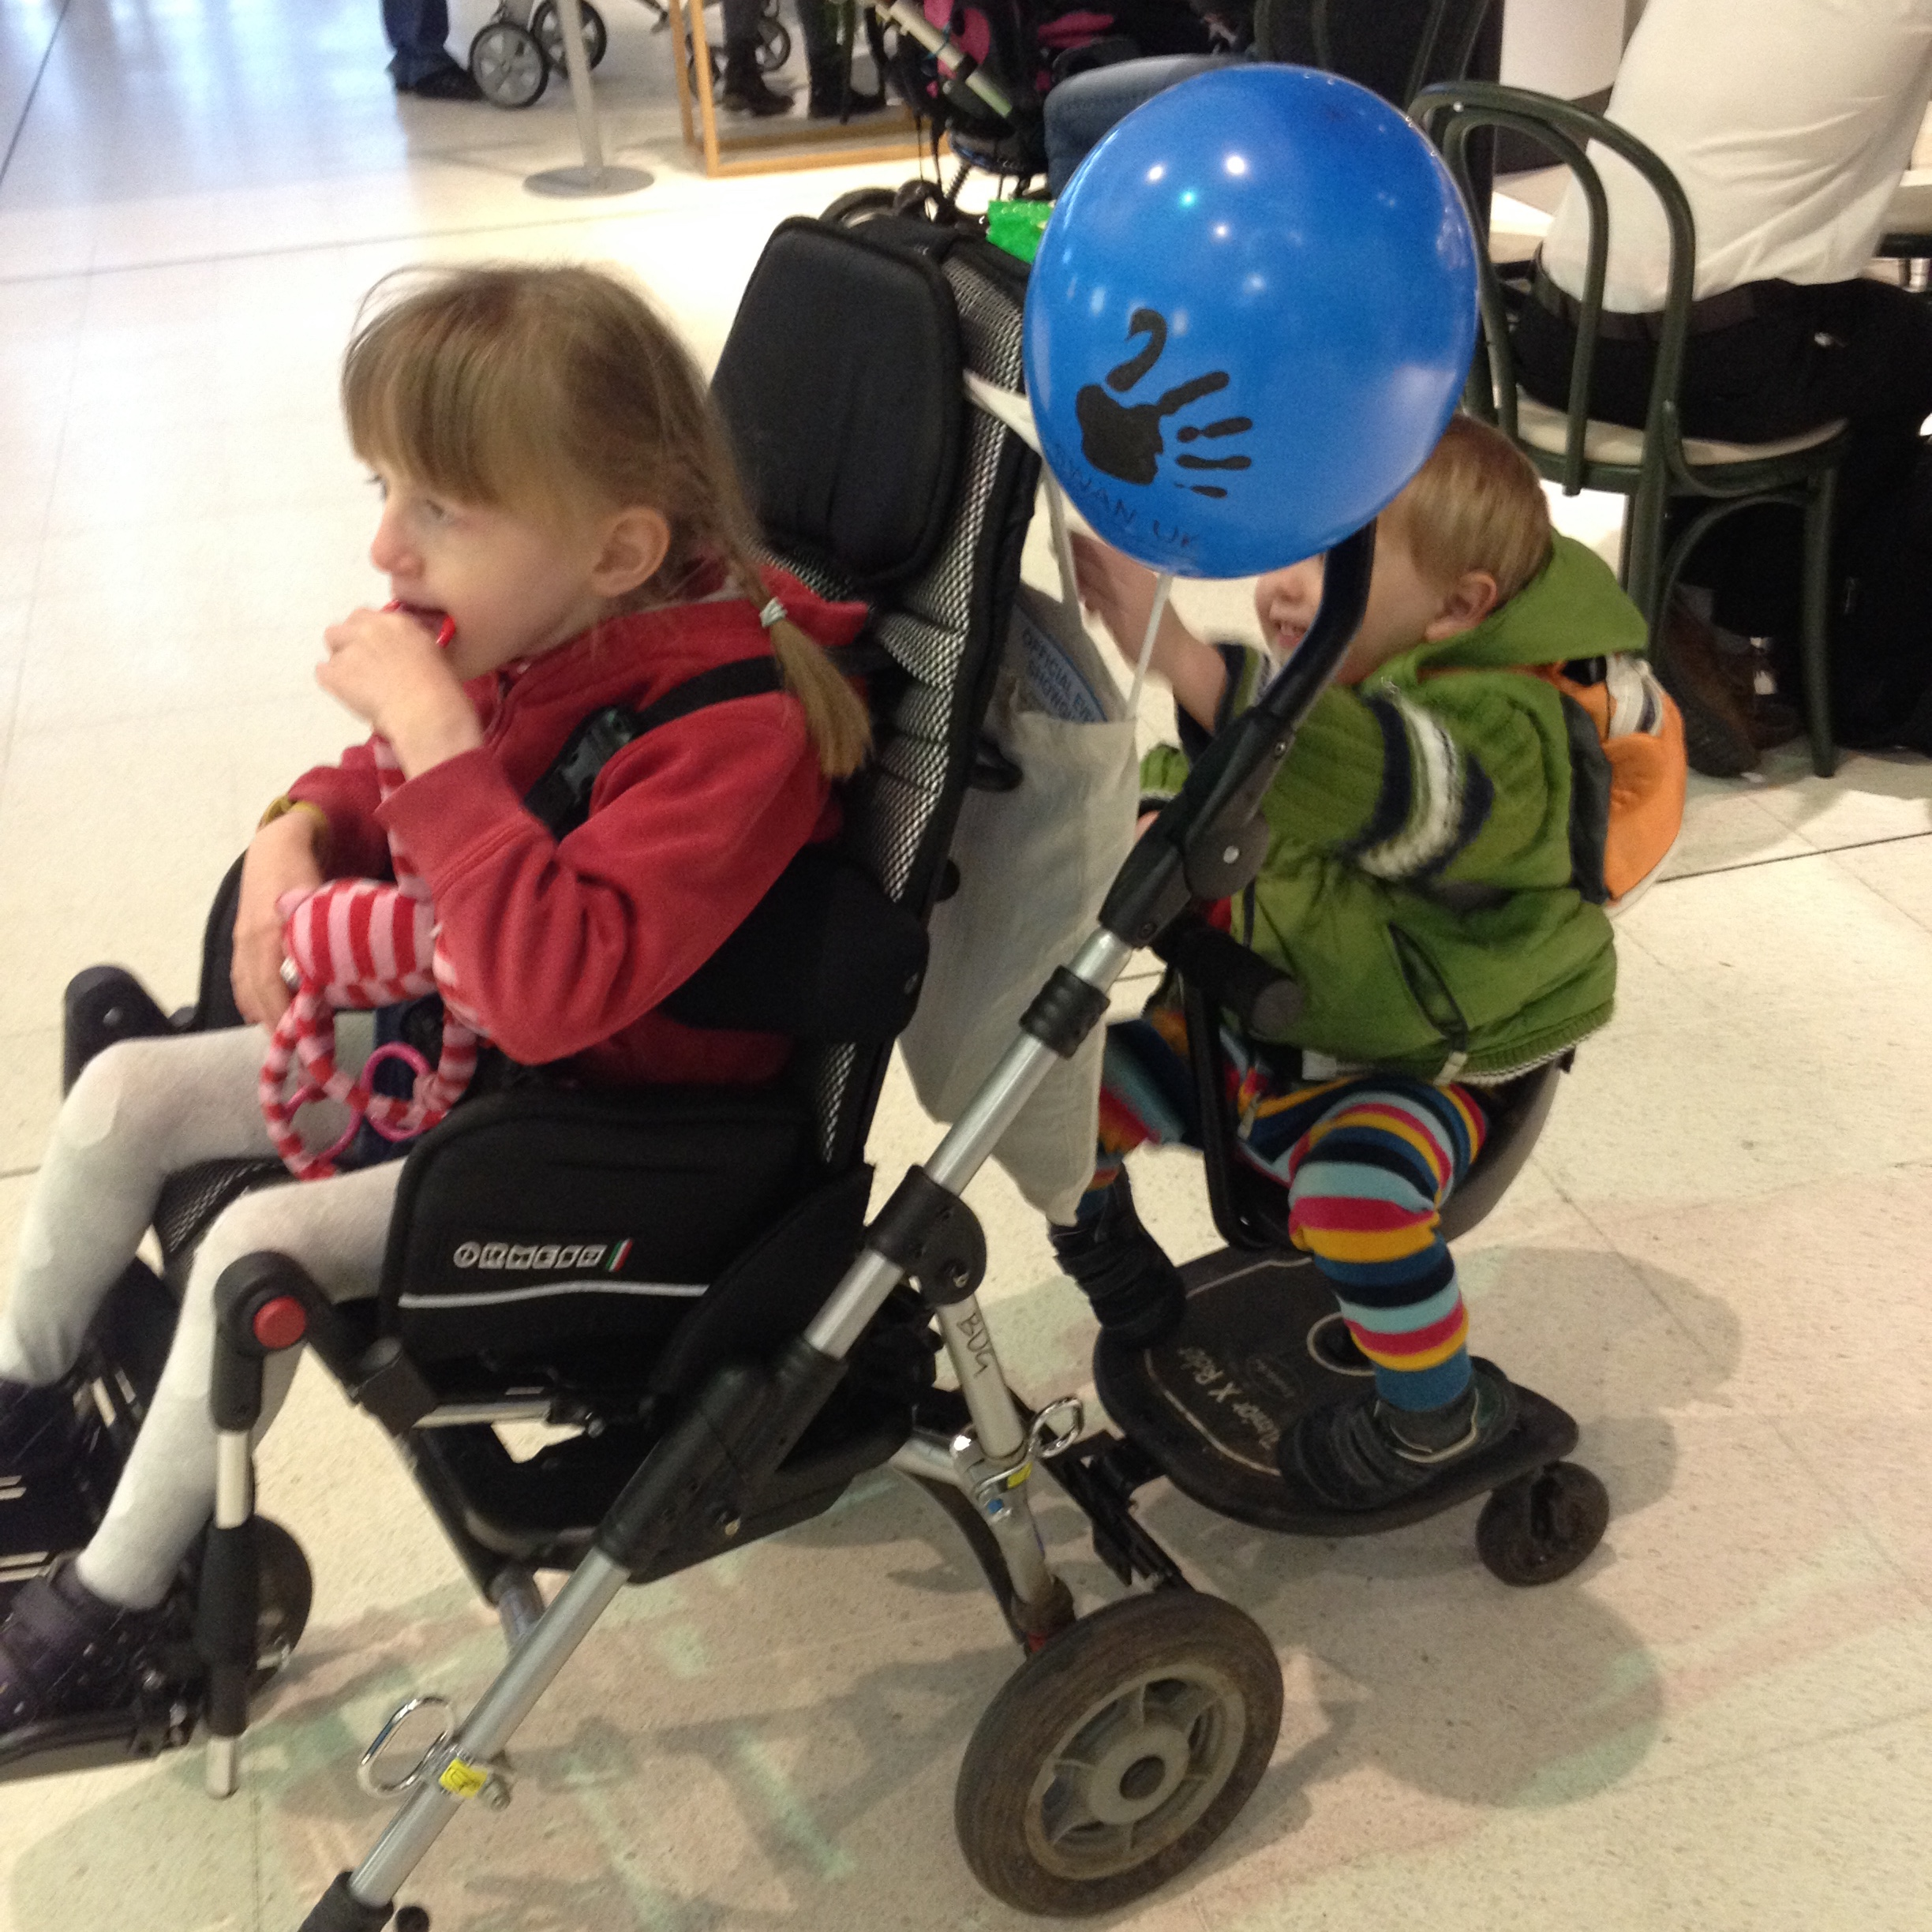 Wheelchair with buggy board and seat for sibling